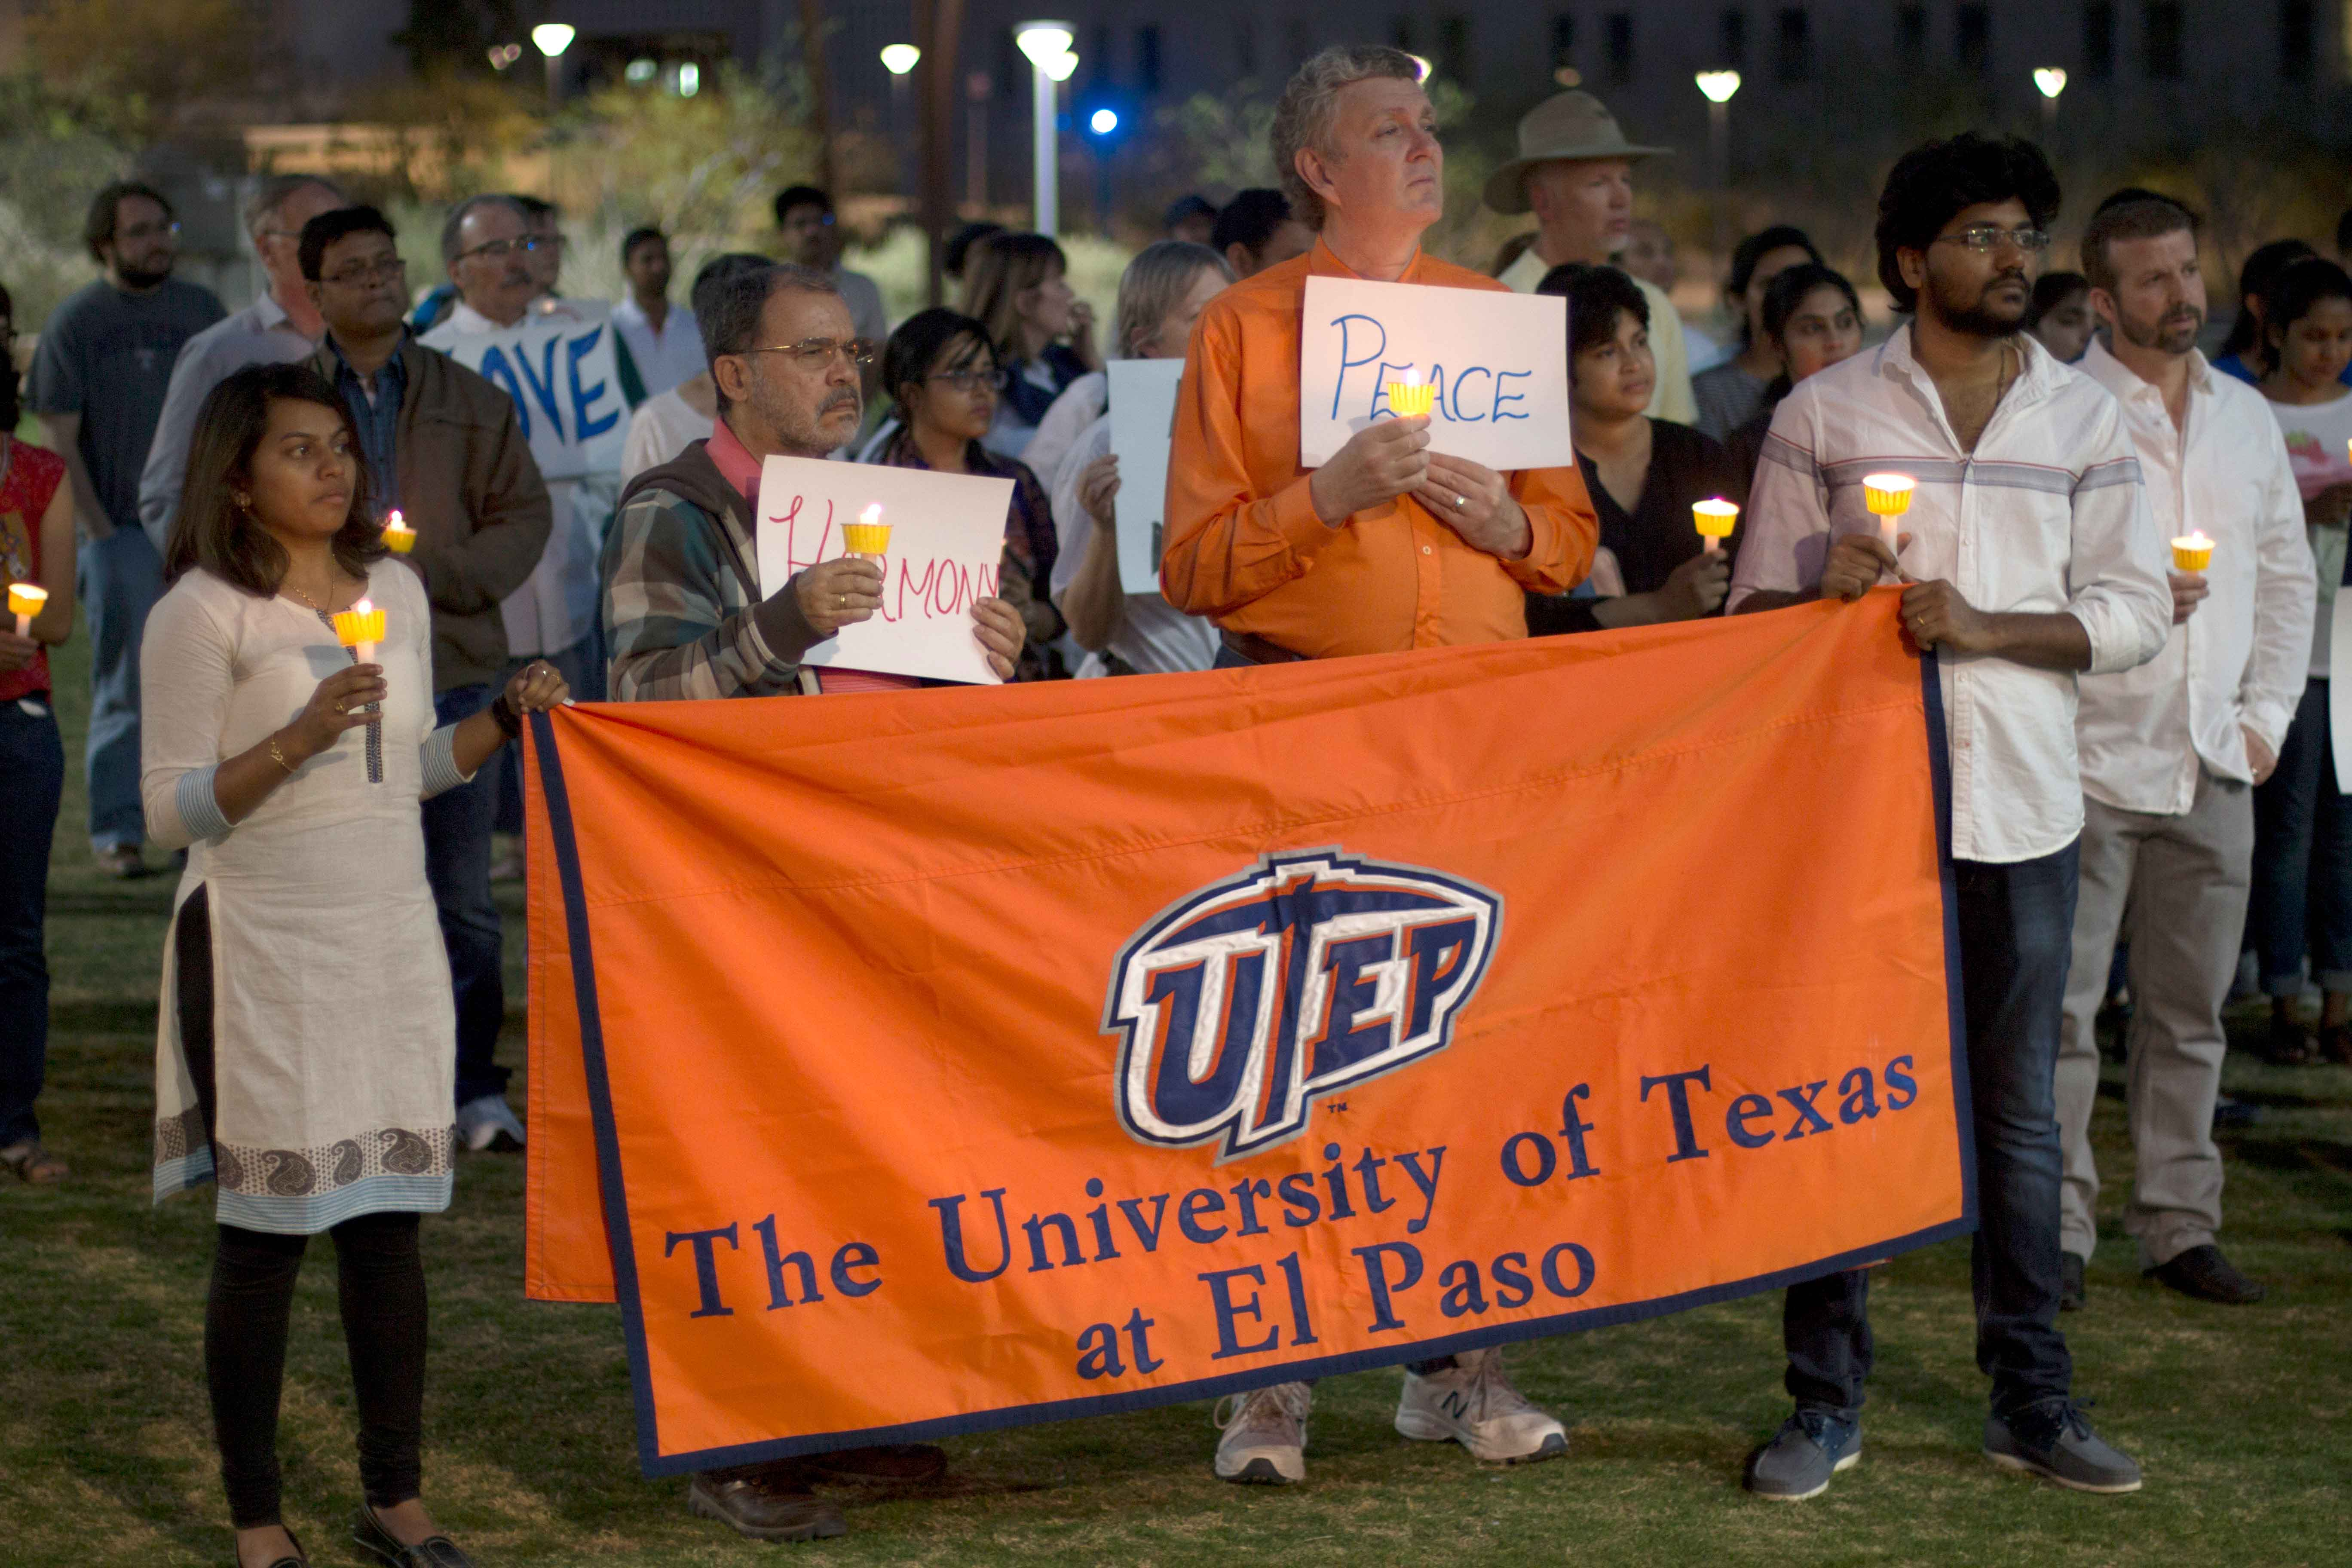 On March 11.UTEP students, staff faculty, and El Paso Community come together at Centennial Plaza in honor of Sirinivas Kuchibhotla who was shot and killed in the result of hate crime.